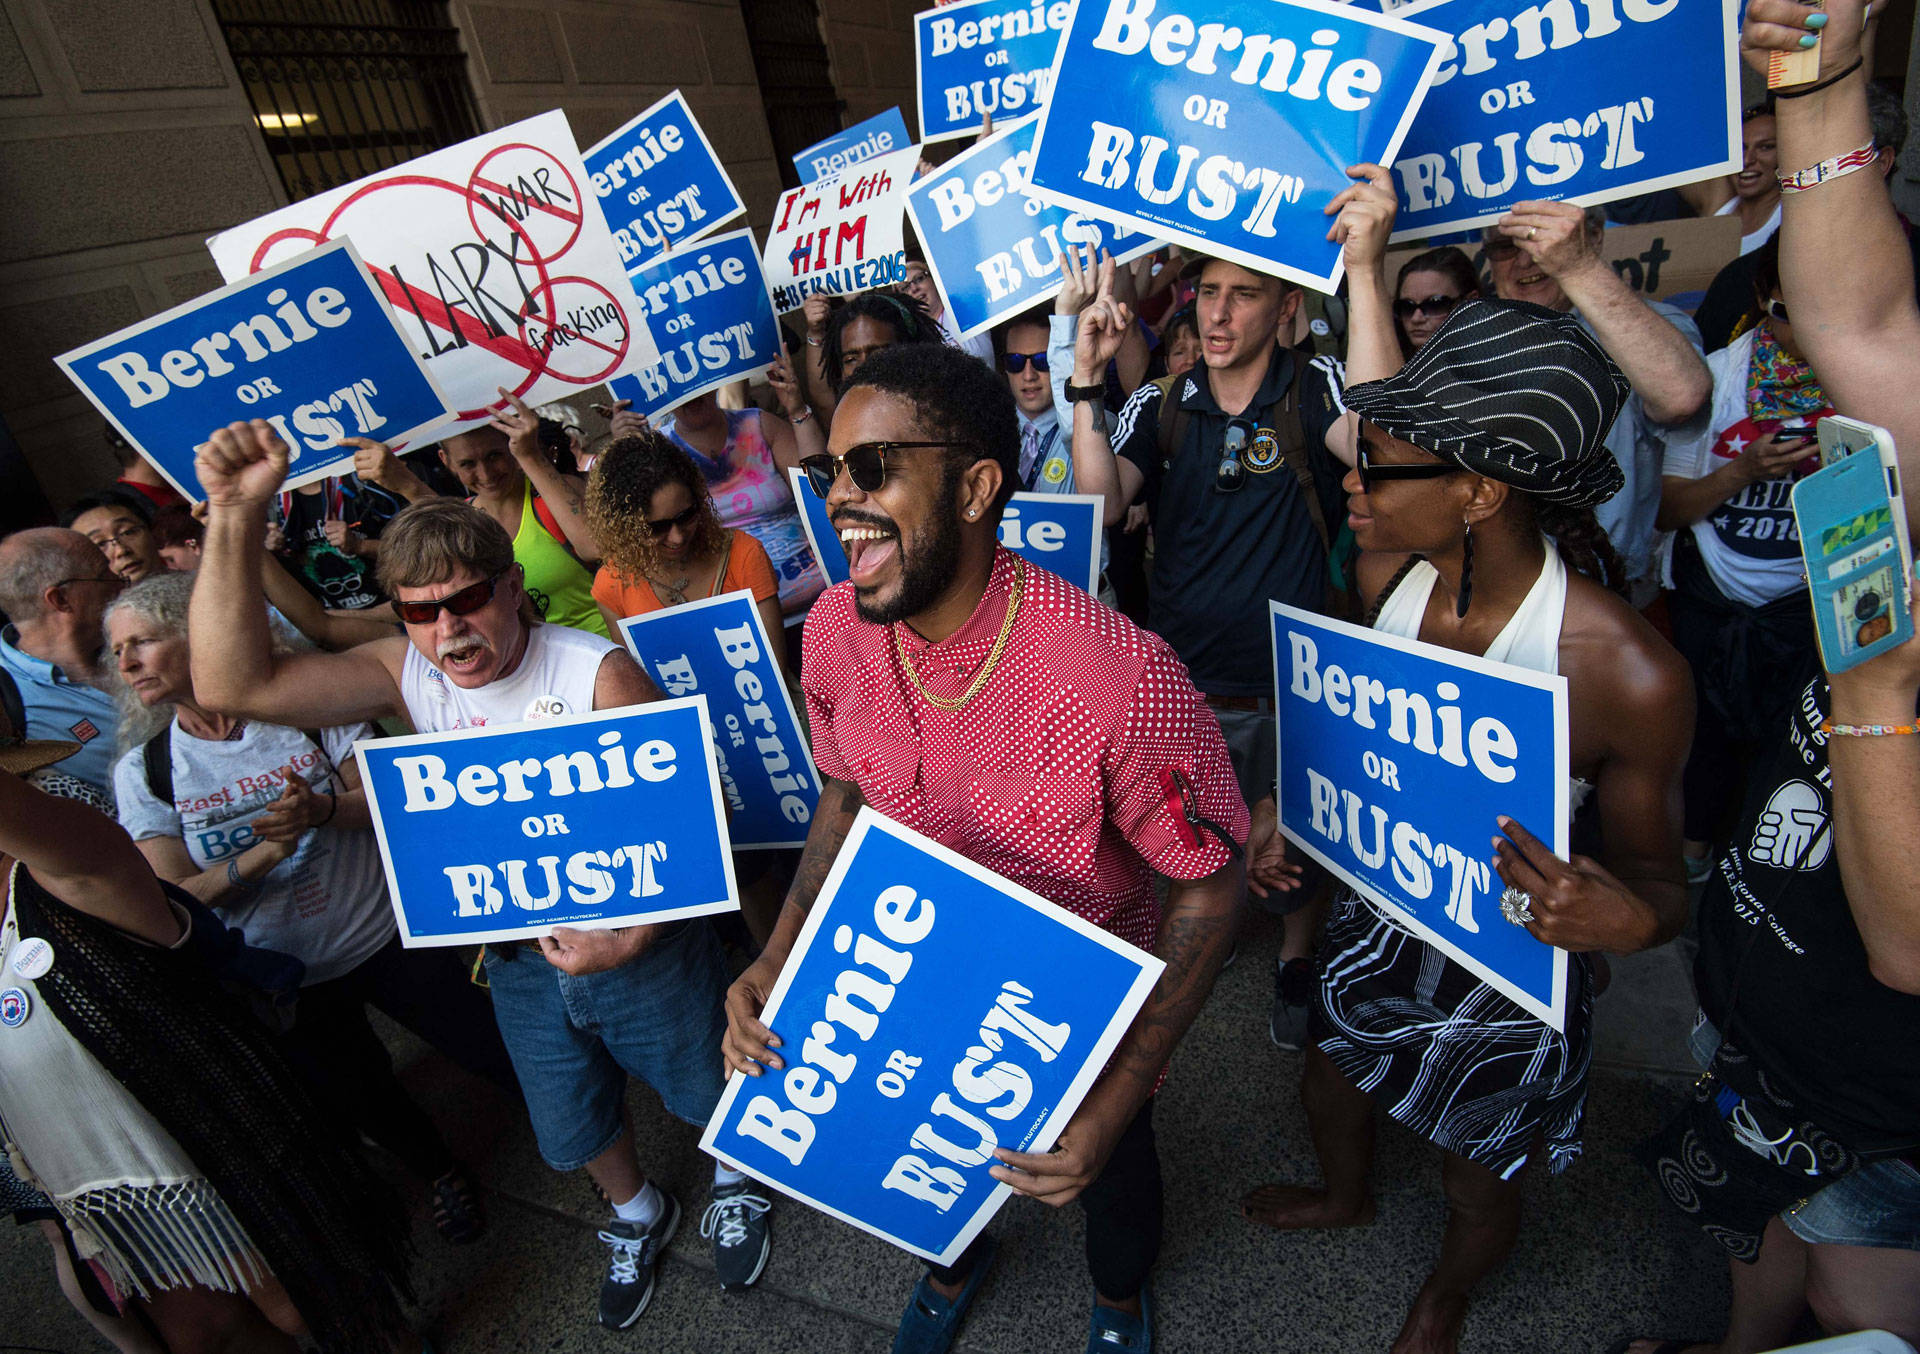 Supporters of Bernie Sanders hold signs at a rally at City Hall in Philadelphia on July 25, 2016.  Nicholas Kamm/AFP/Getty Images